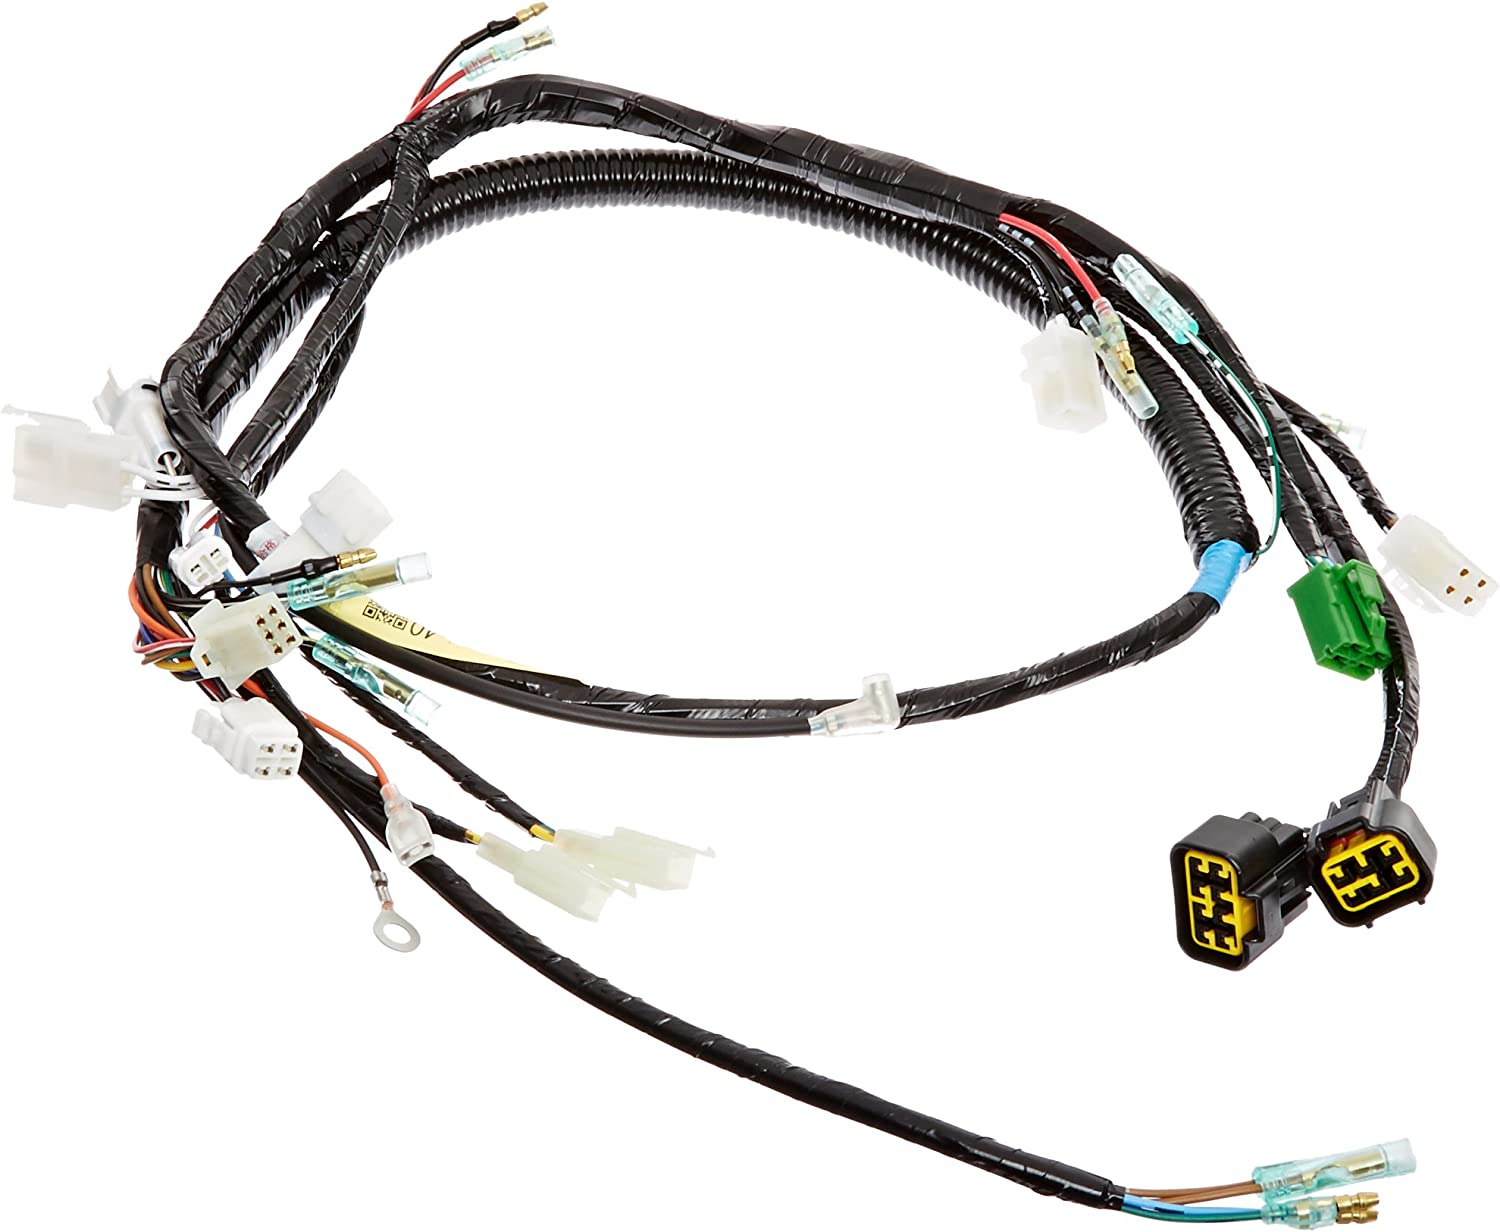 Amazon.com: Yamaha 3GD825904000 Wire Harness Assembly: Automotive | Wolverine Wiring Harness 1995 |  | Amazon.com